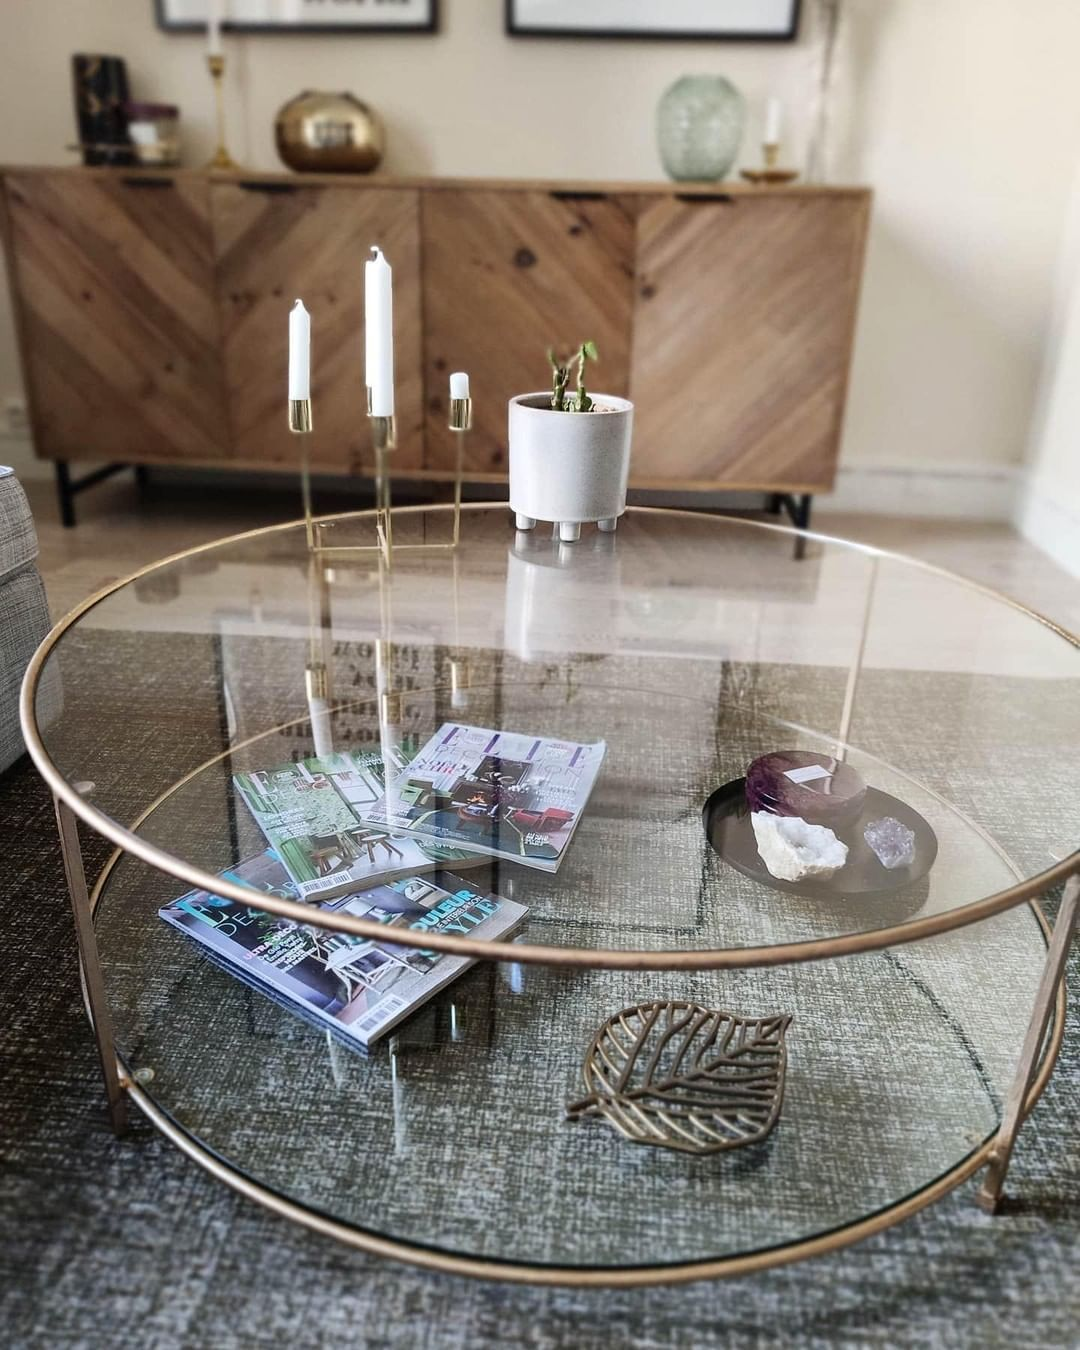 La Redoute Uk On Instagram House Of The Week Comes From Gallery Photo Emma Featuring Our Sybil Table Ta Inside Kitchen Cabinets Table Coffee Table [ 1350 x 1080 Pixel ]